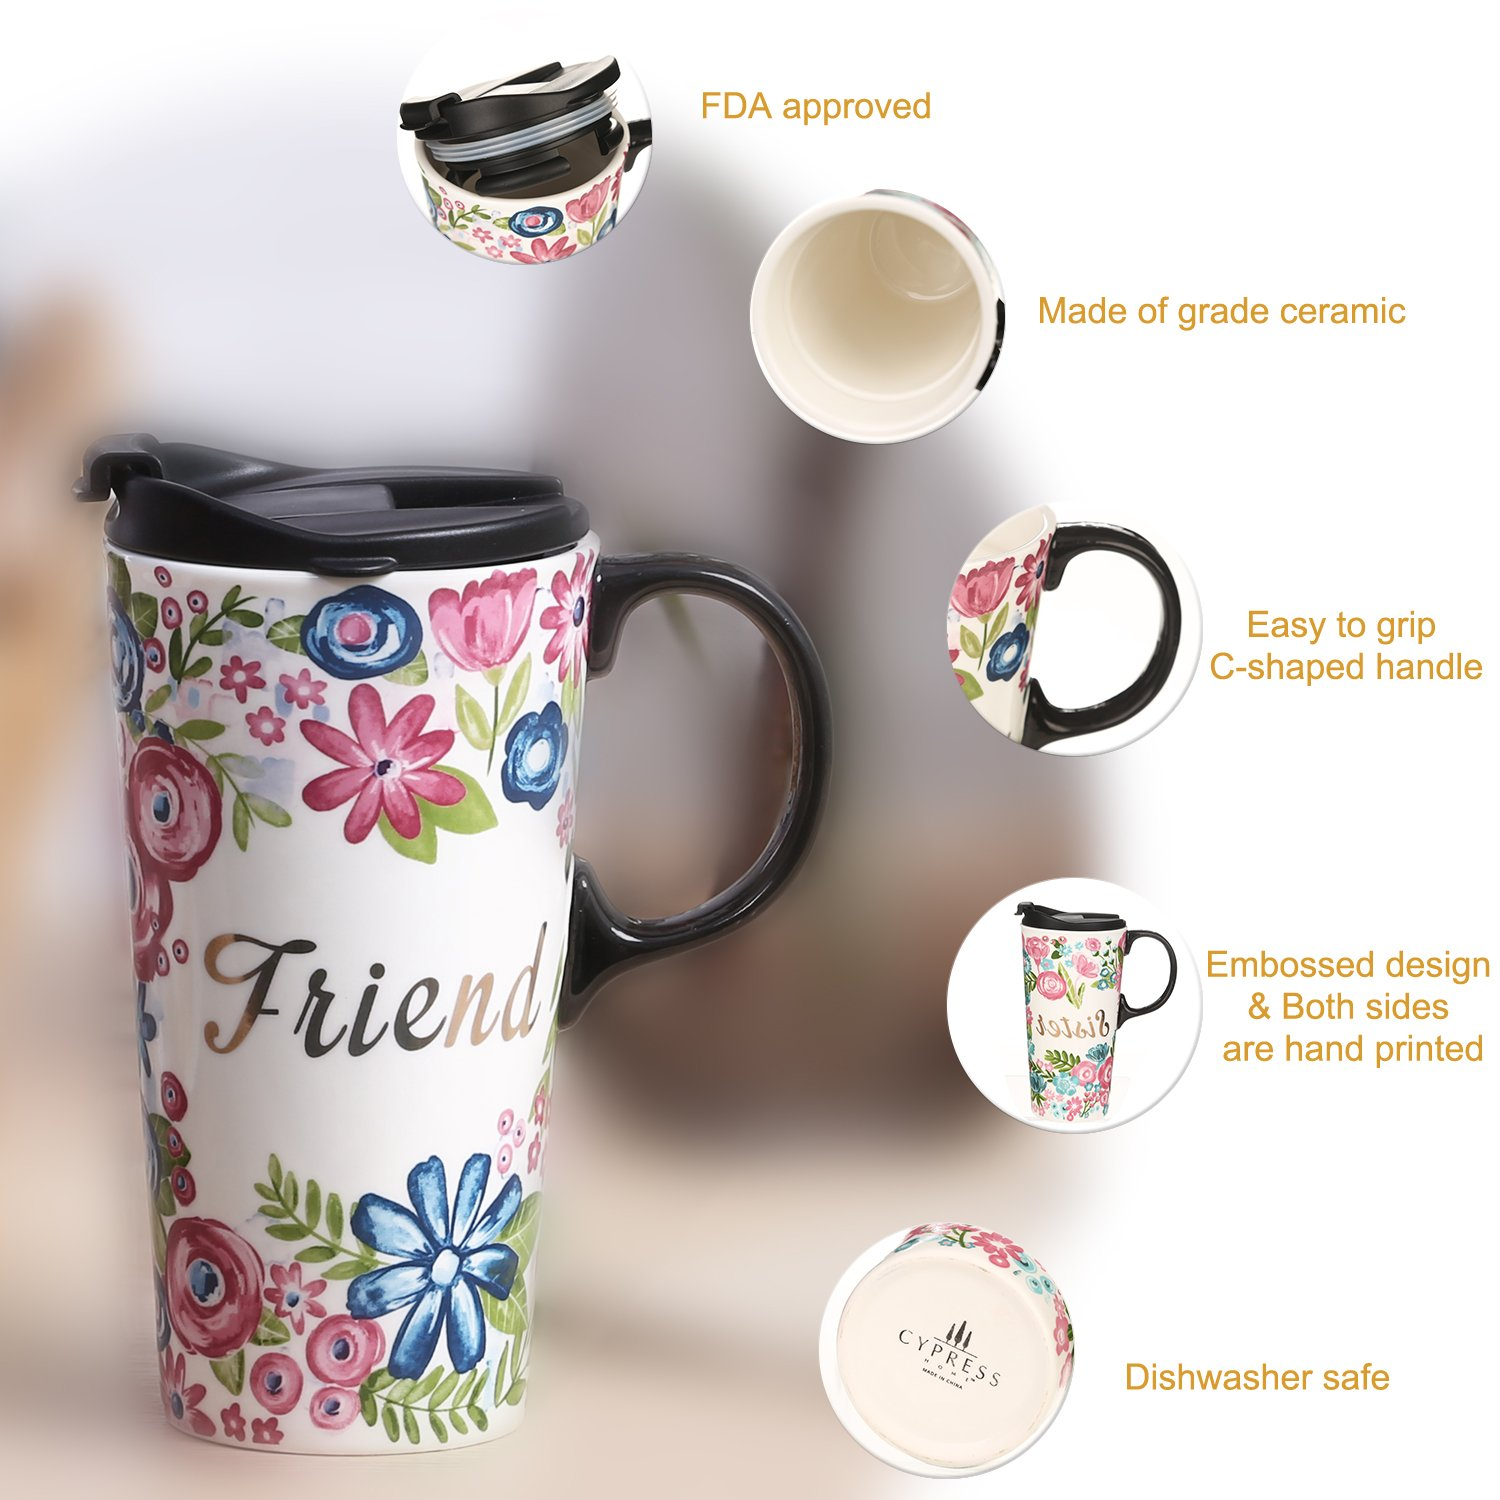 CEDAR HOME Travel Coffee Ceramic Mug Porcelain Latte Tea Cup With Lid in Gift Box 17oz. Sister & Friend, 2 Pack by CEDAR HOME (Image #2)